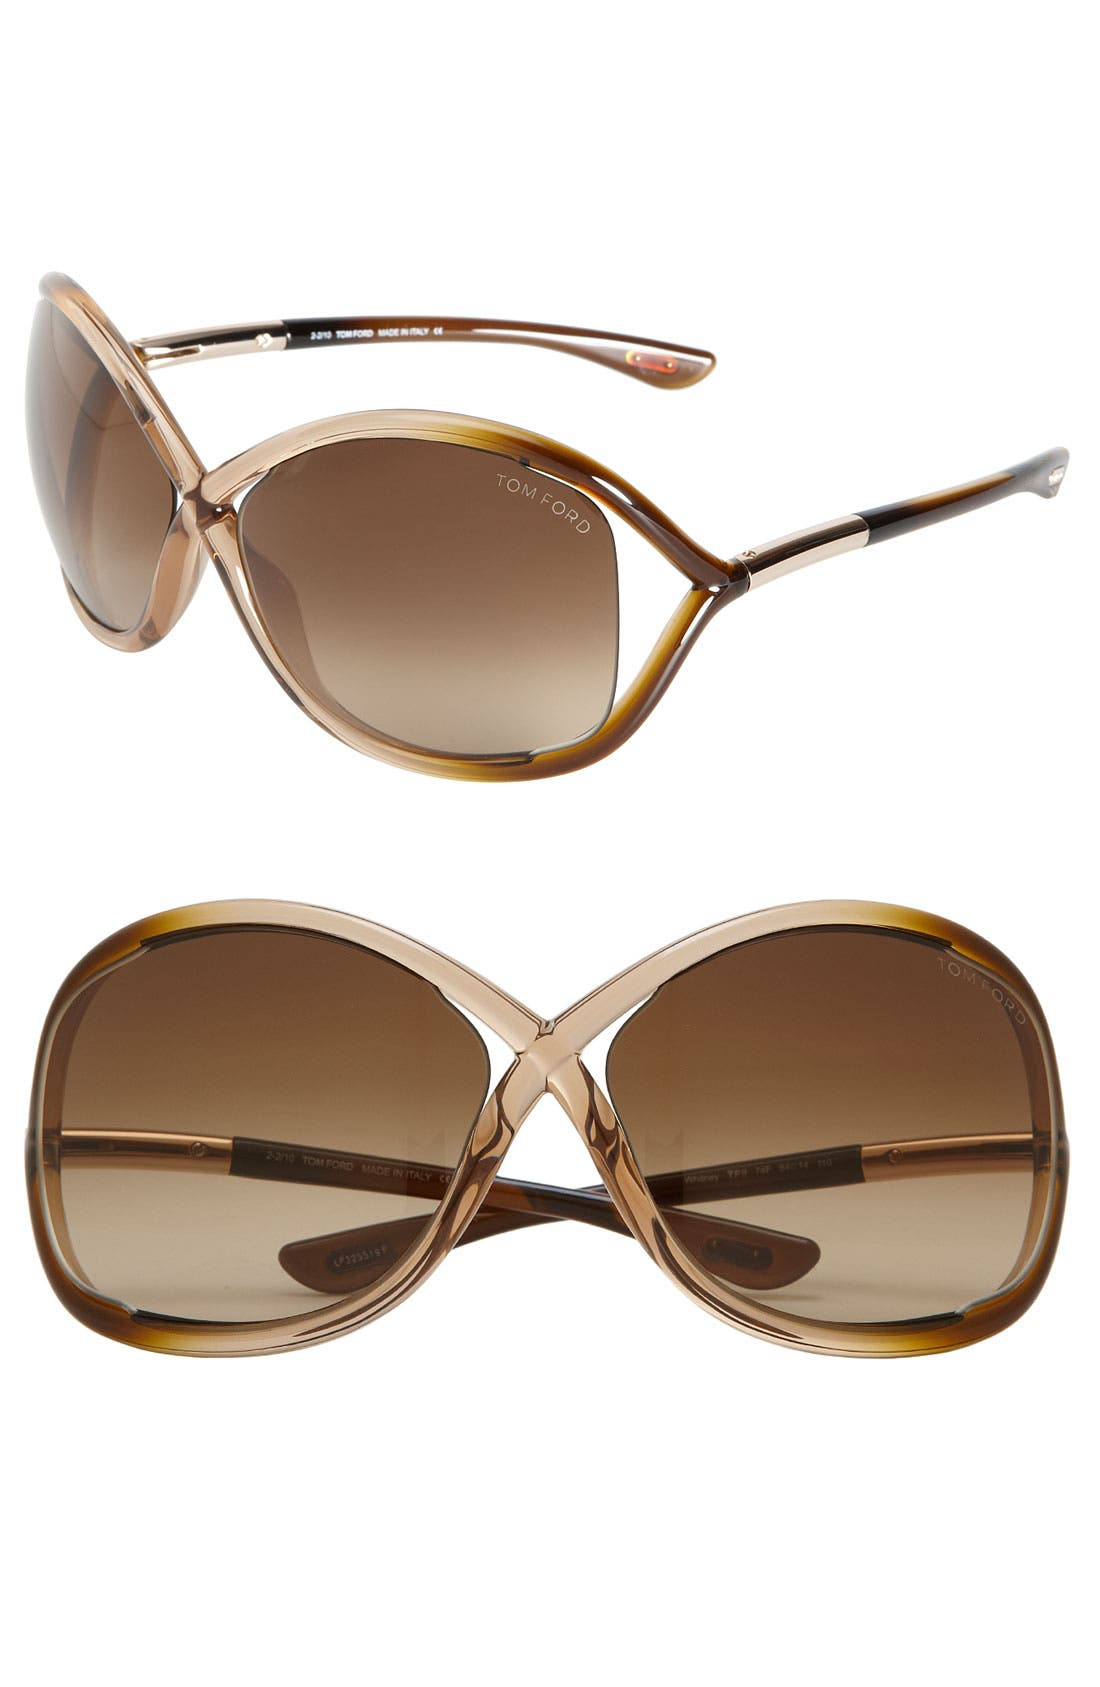 Tom Ford 'Whitney' 64mm Open Side Sunglasses